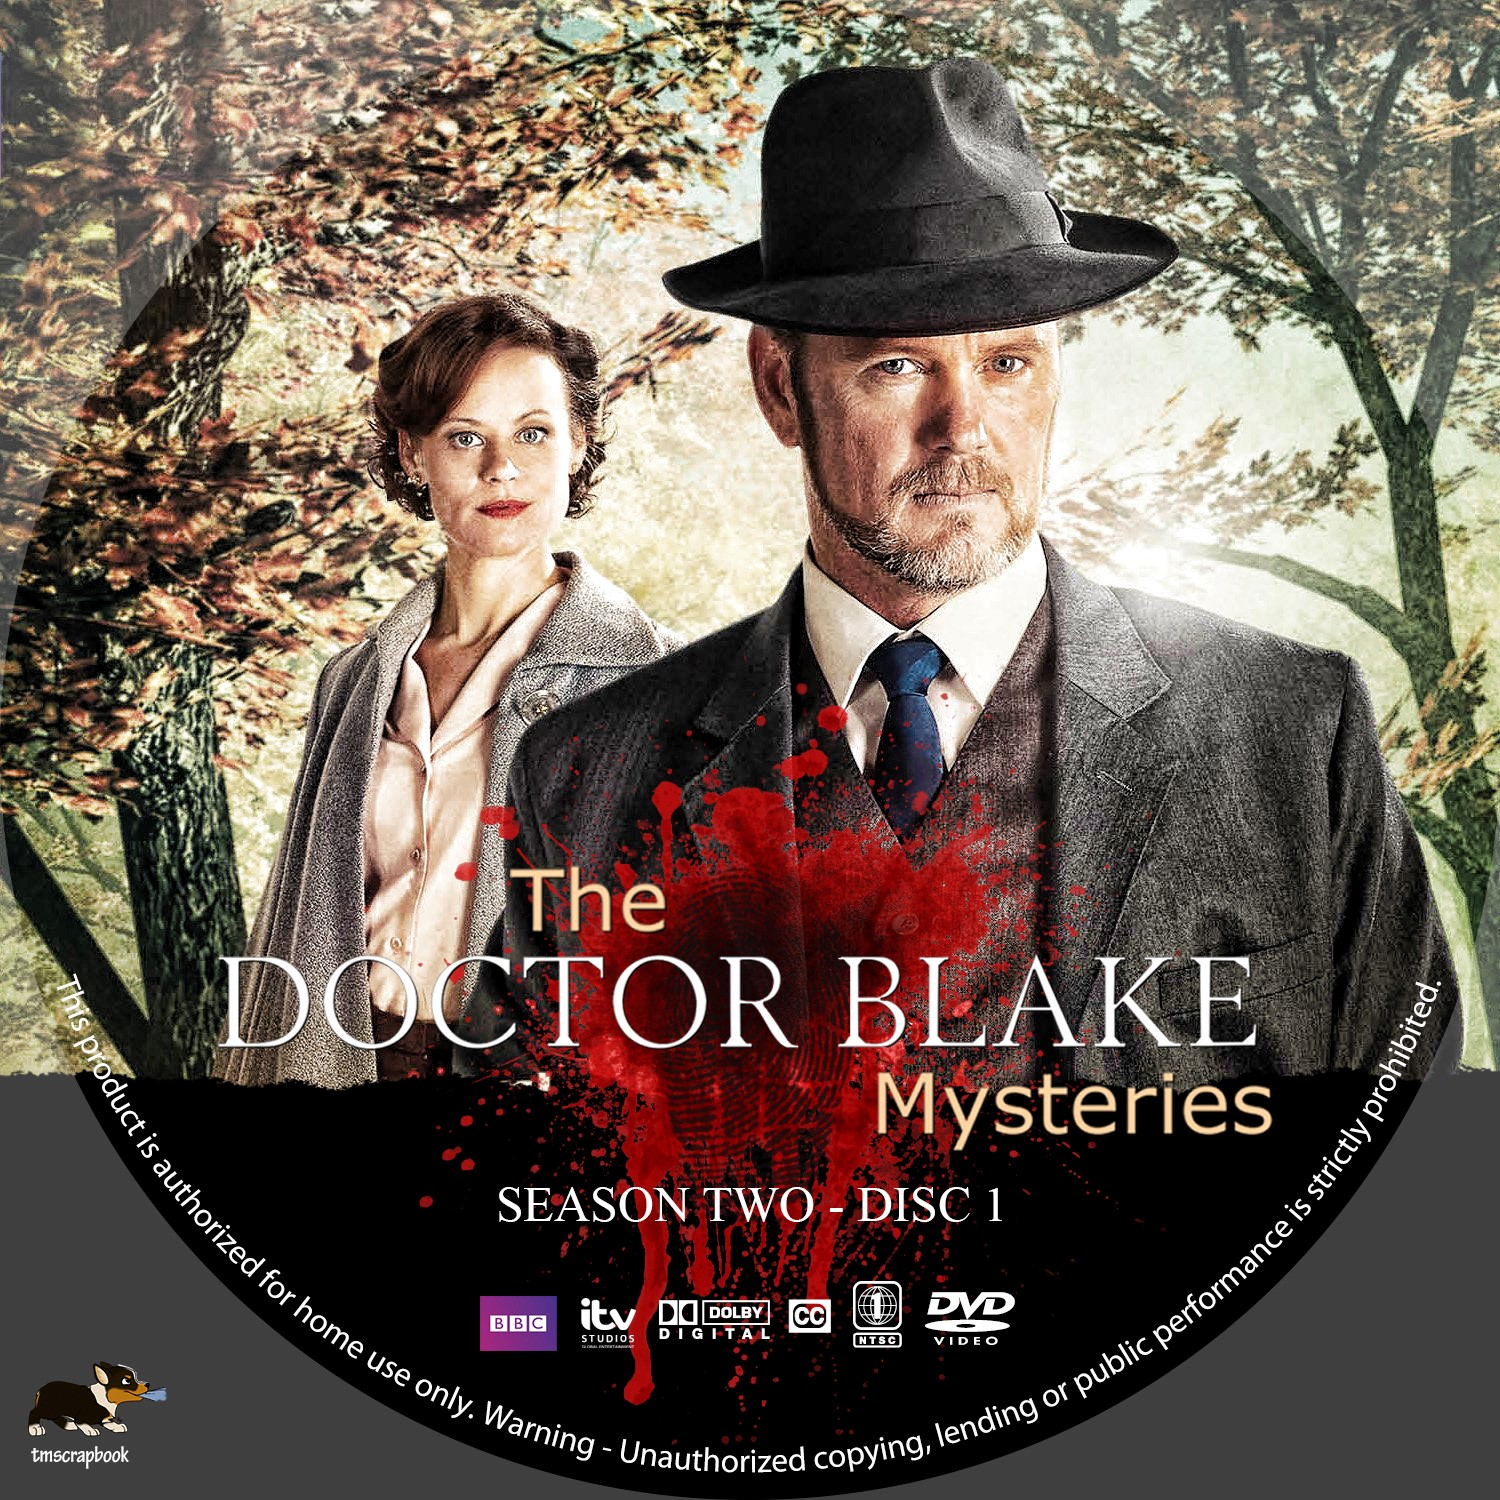 The Doctor Blake Mysteries Season 2 Disc 1-3 DVD Label